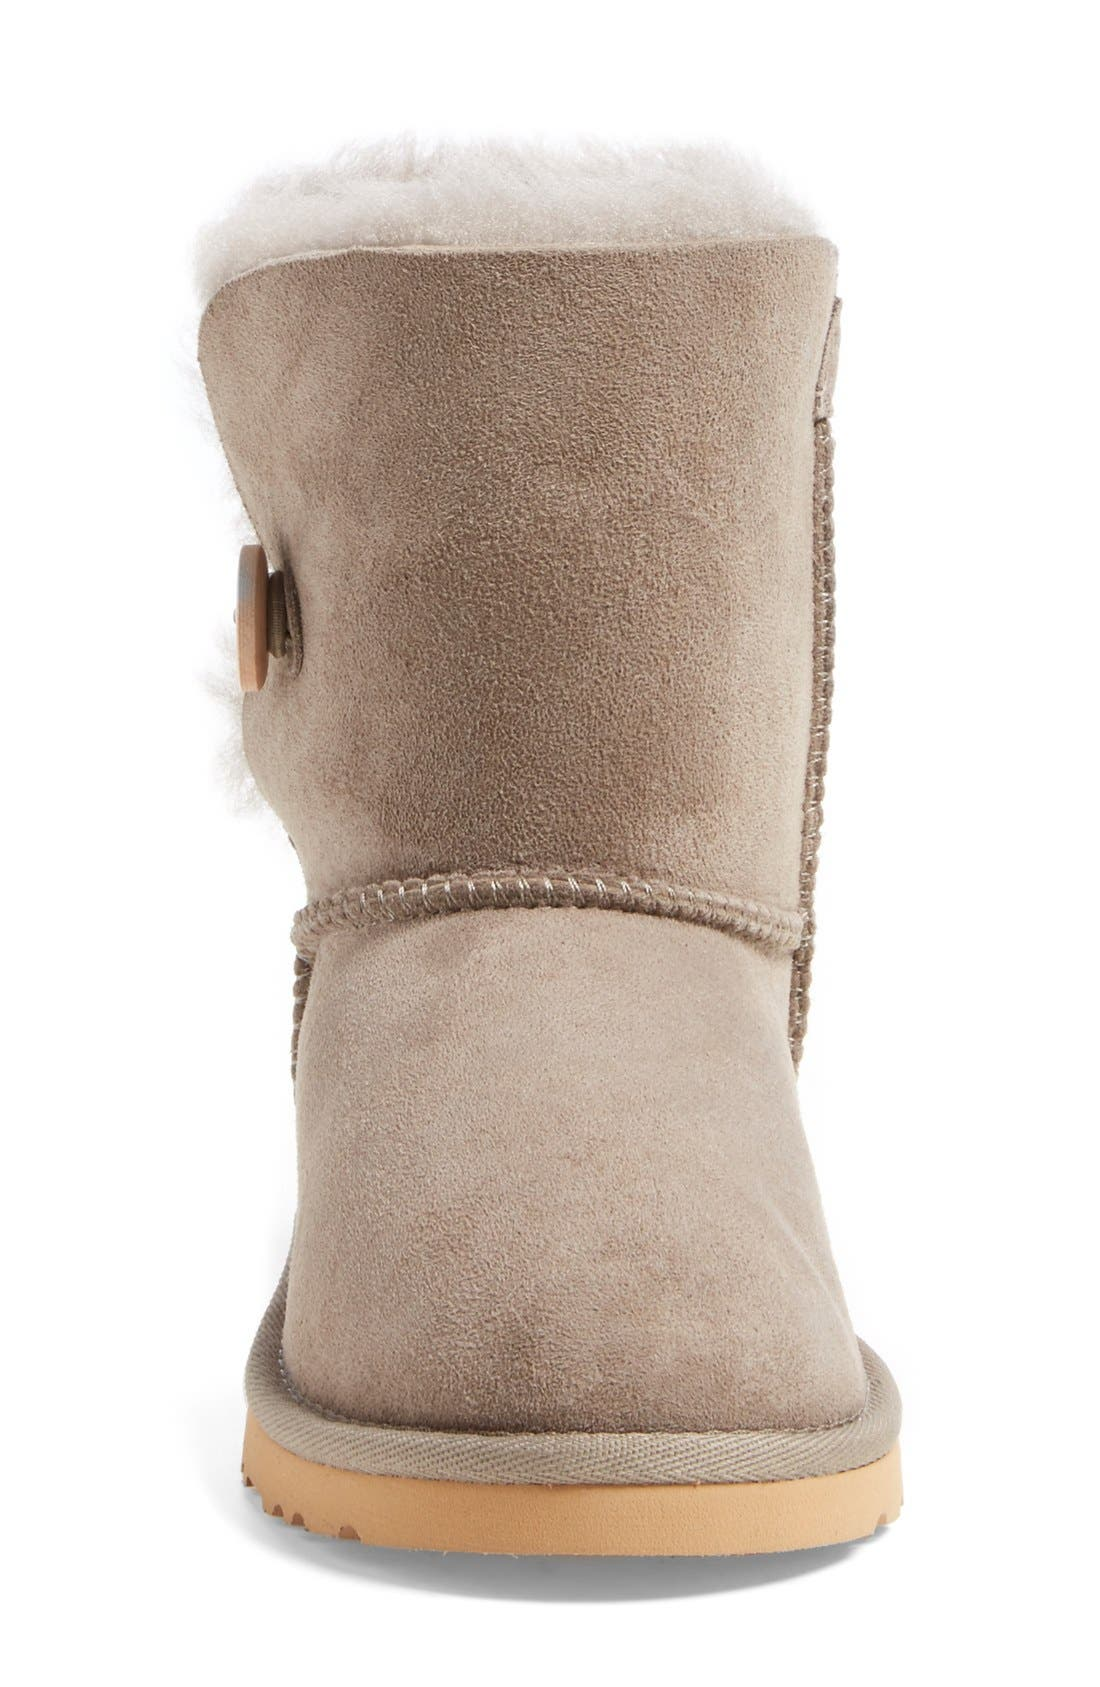 Alternate Image 3  - UGG® 'Bailey Button' Boot (Walker, Toddler, Little Kid & Big Kid)